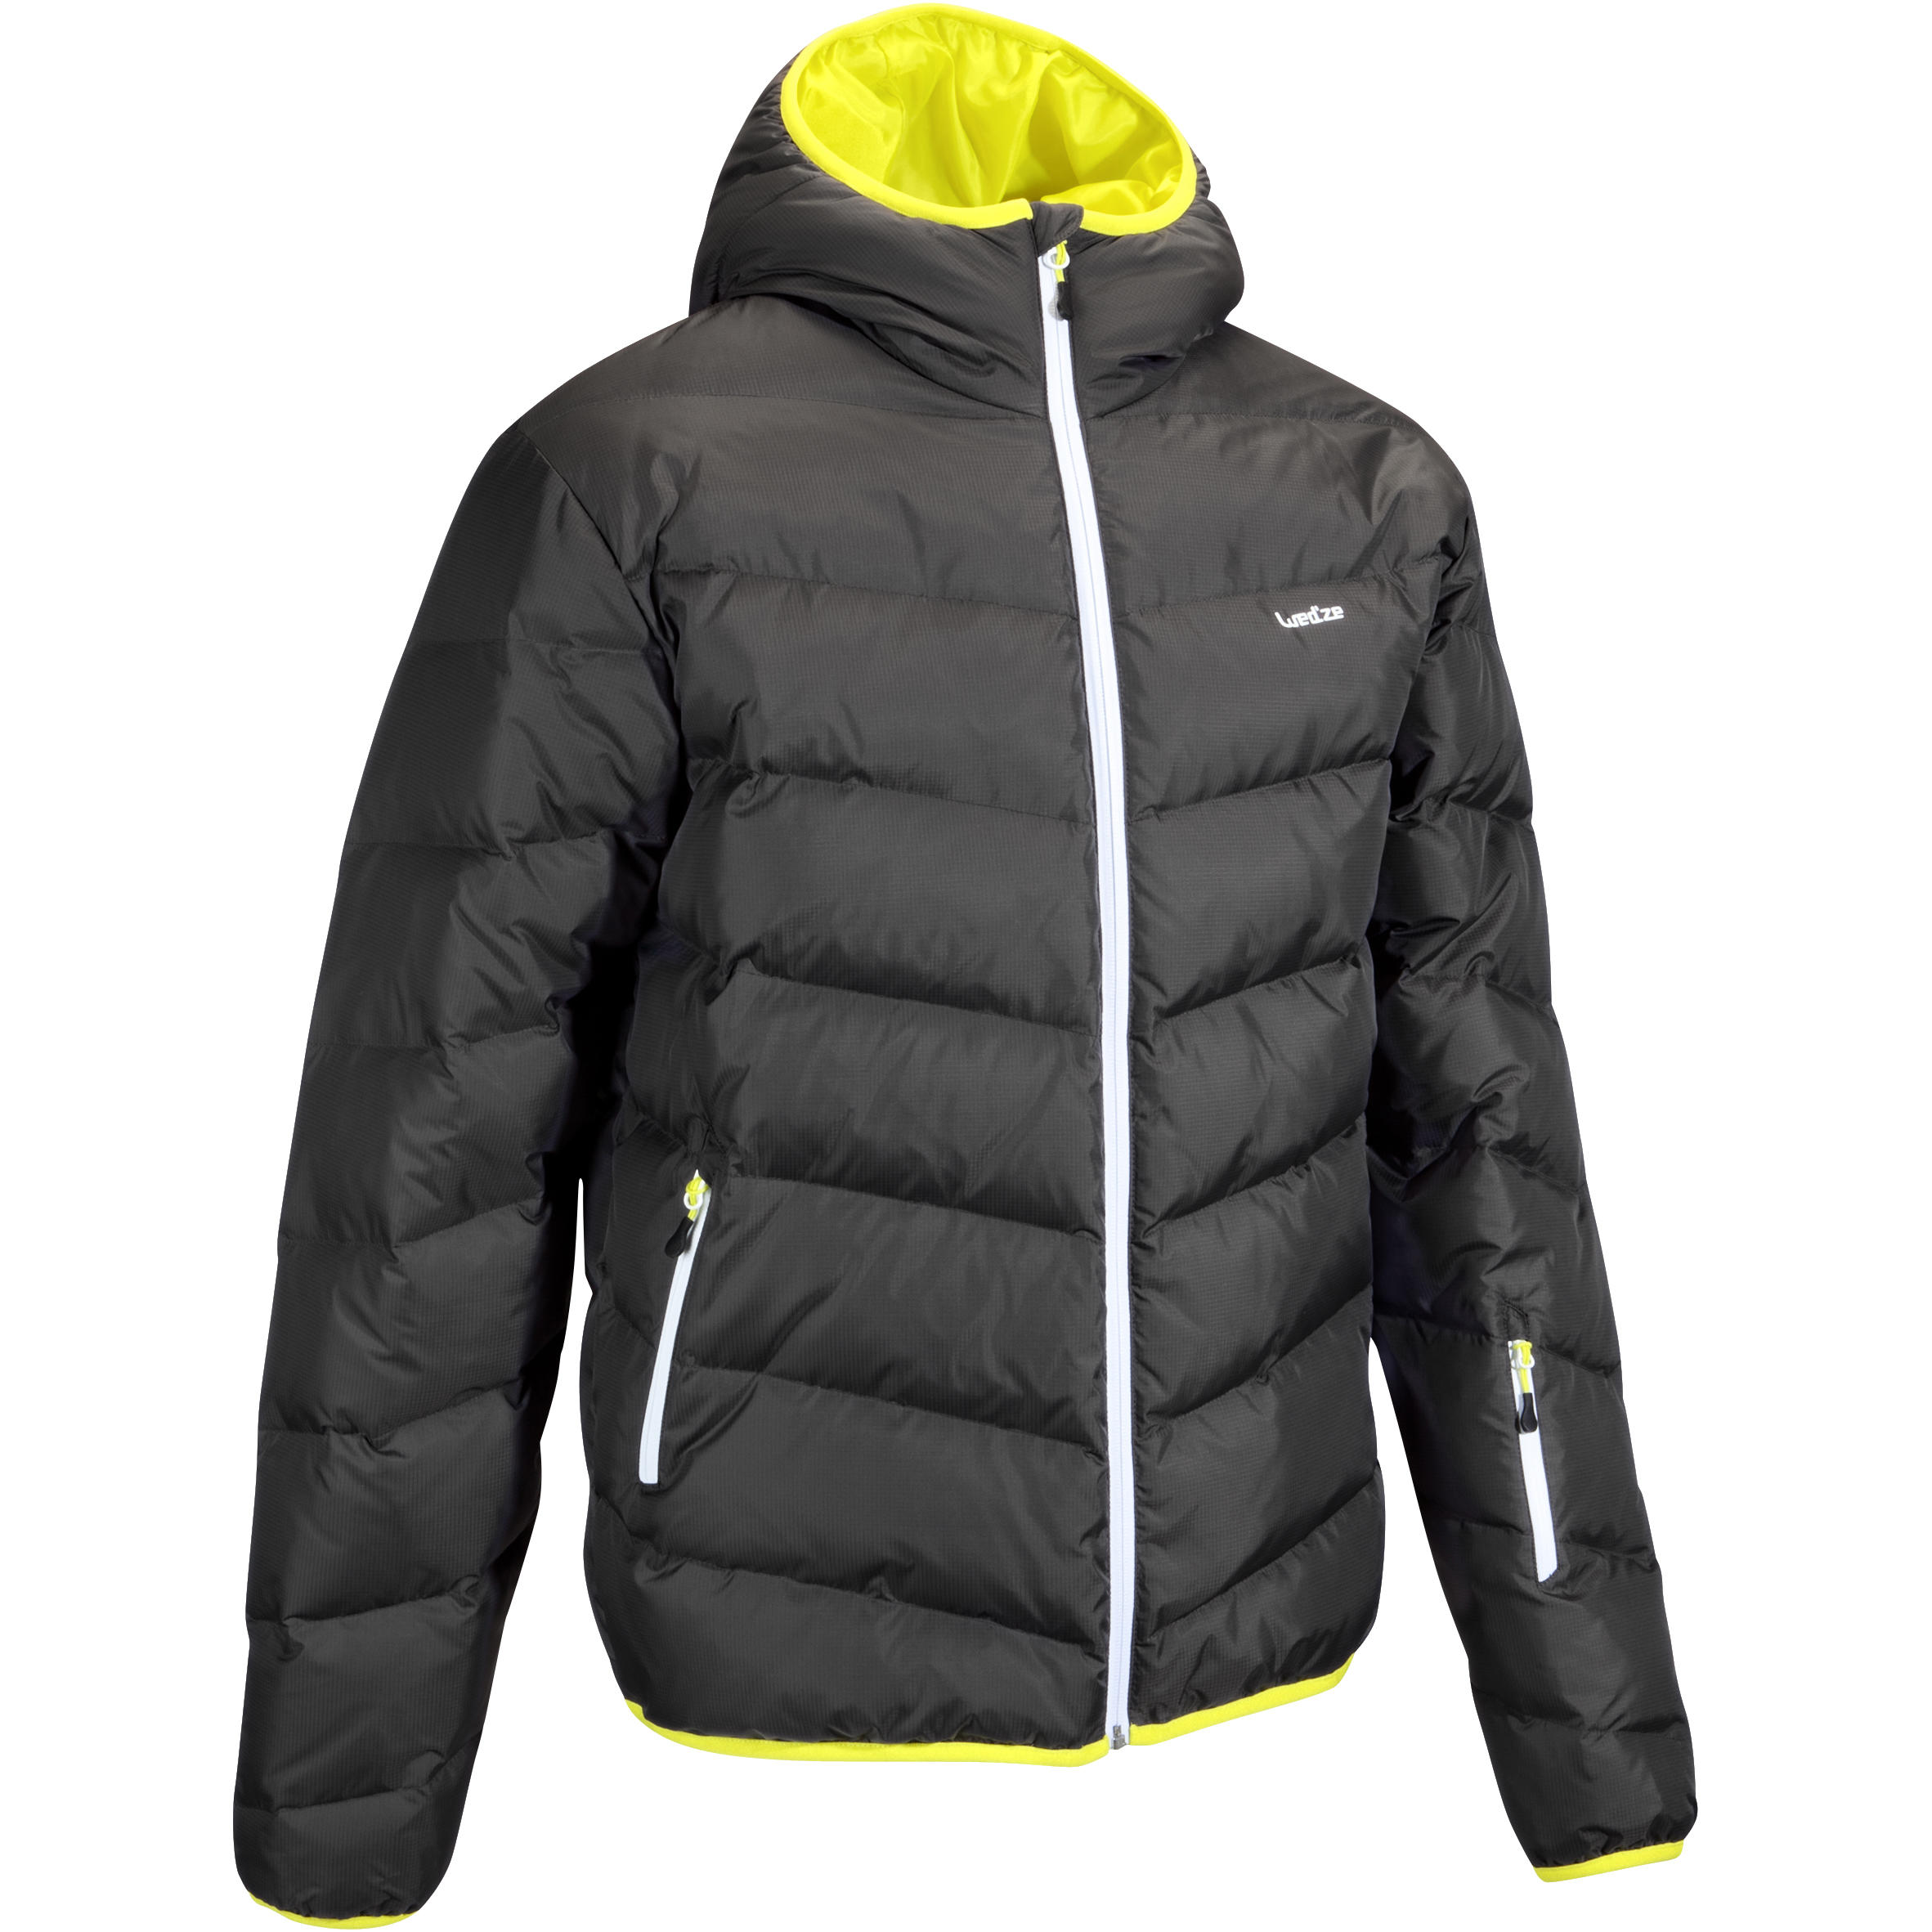 SKI-P 500 MEN'S WARM SKI JKT - GREY